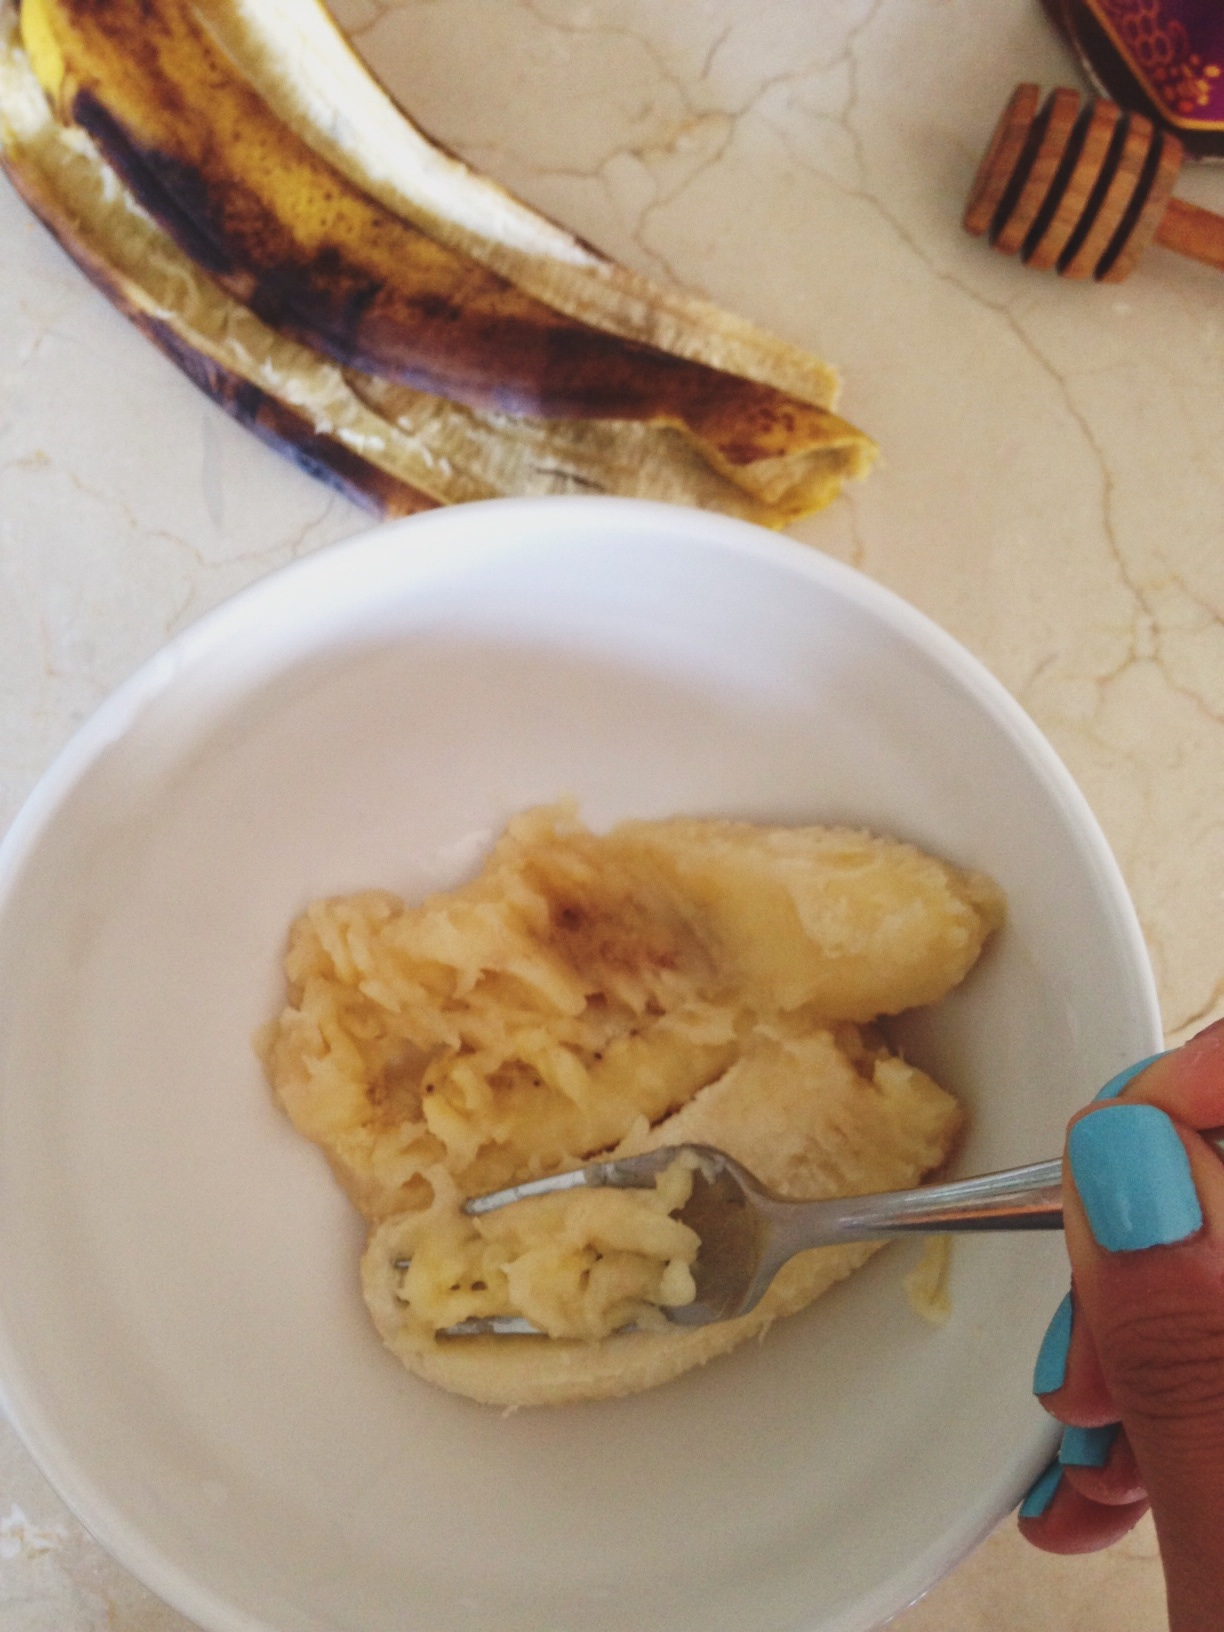 Peel overripe banana, place in mixing bowl and mash it up with fork.